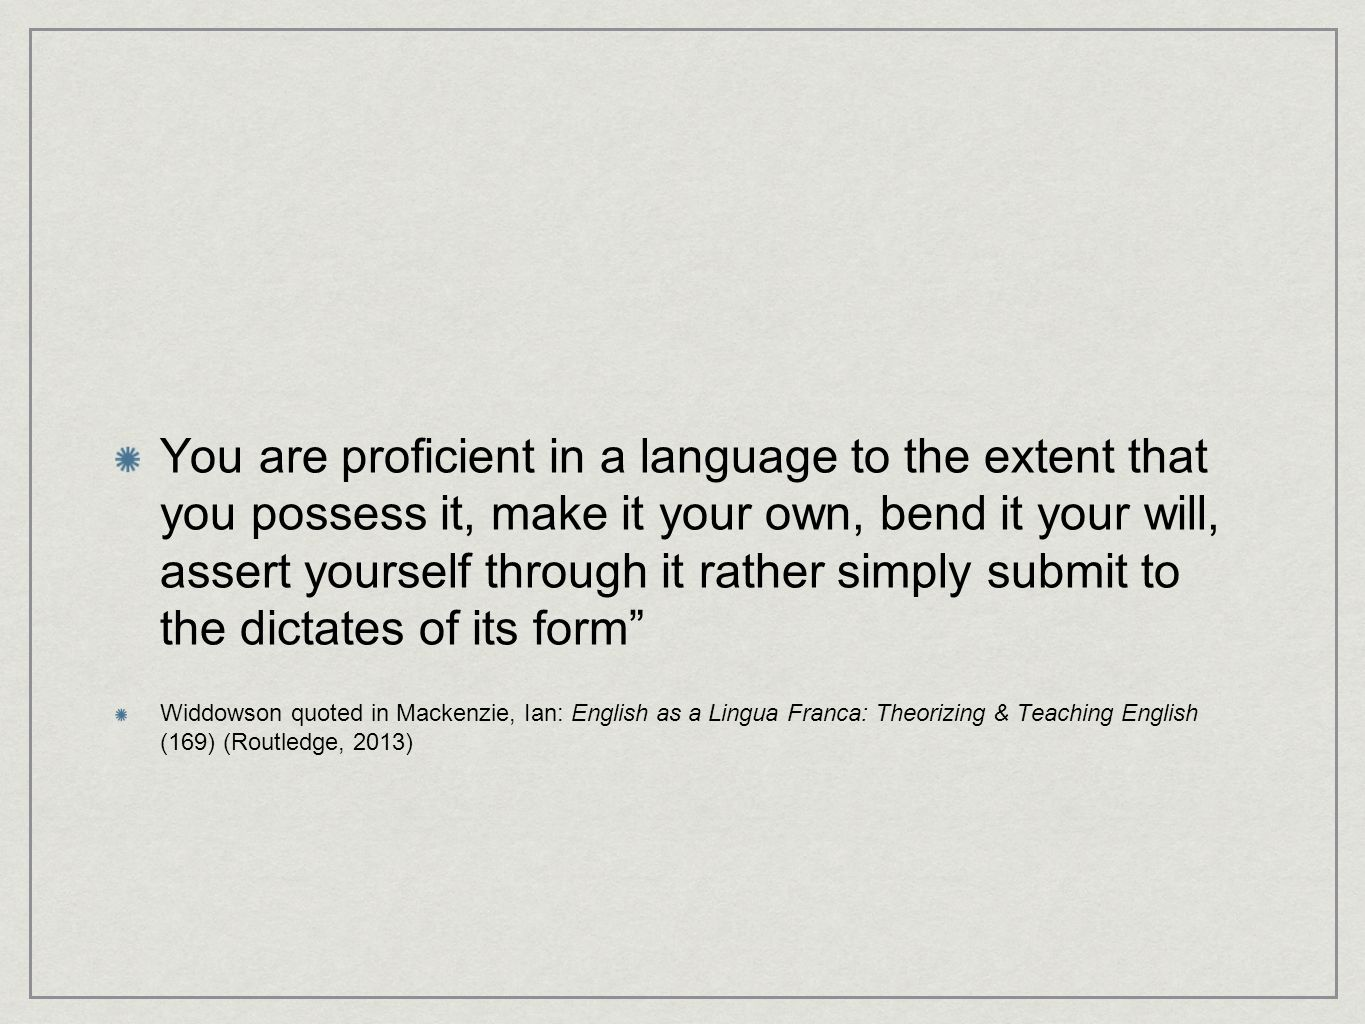 You are proficient in a language to the extent that you possess it, make it your own, bend it your will, assert yourself through it rather simply submit to the dictates of its form Widdowson quoted in Mackenzie, Ian: English as a Lingua Franca: Theorizing & Teaching English (169) (Routledge, 2013)